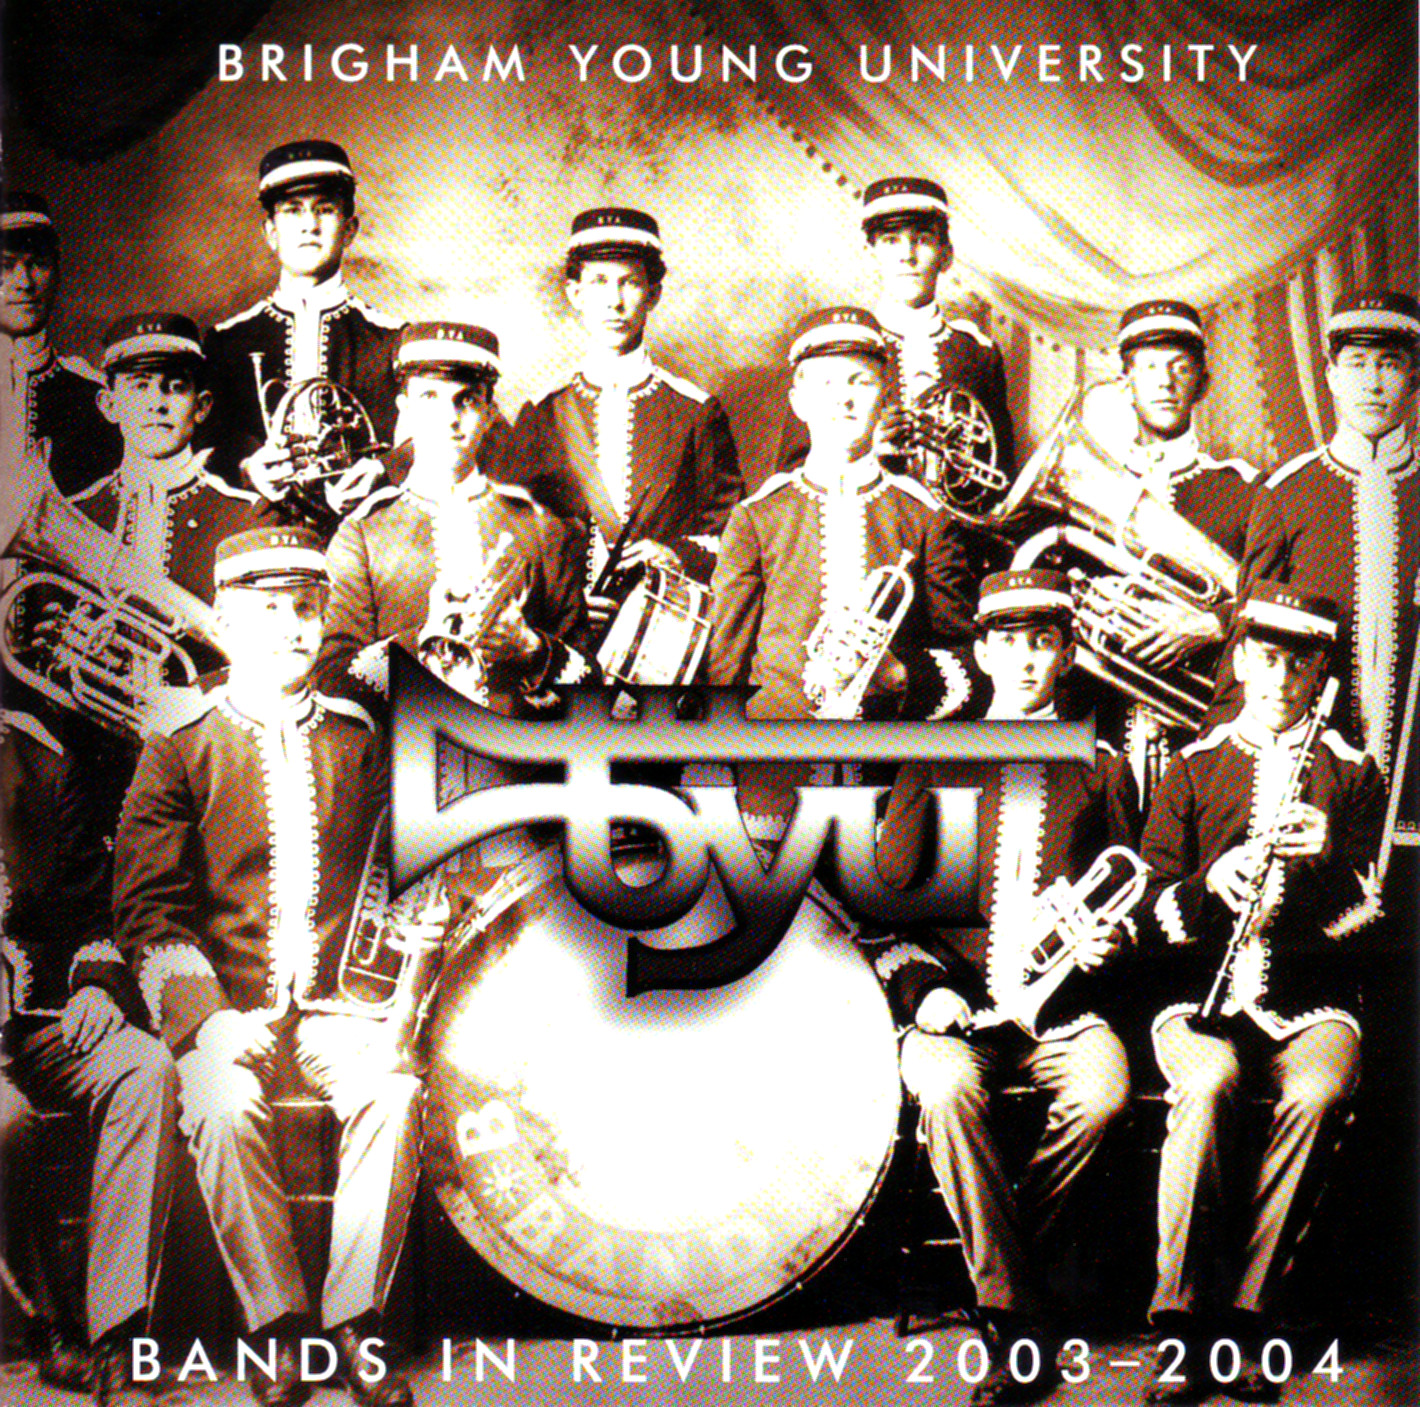 BYU Review 03/04